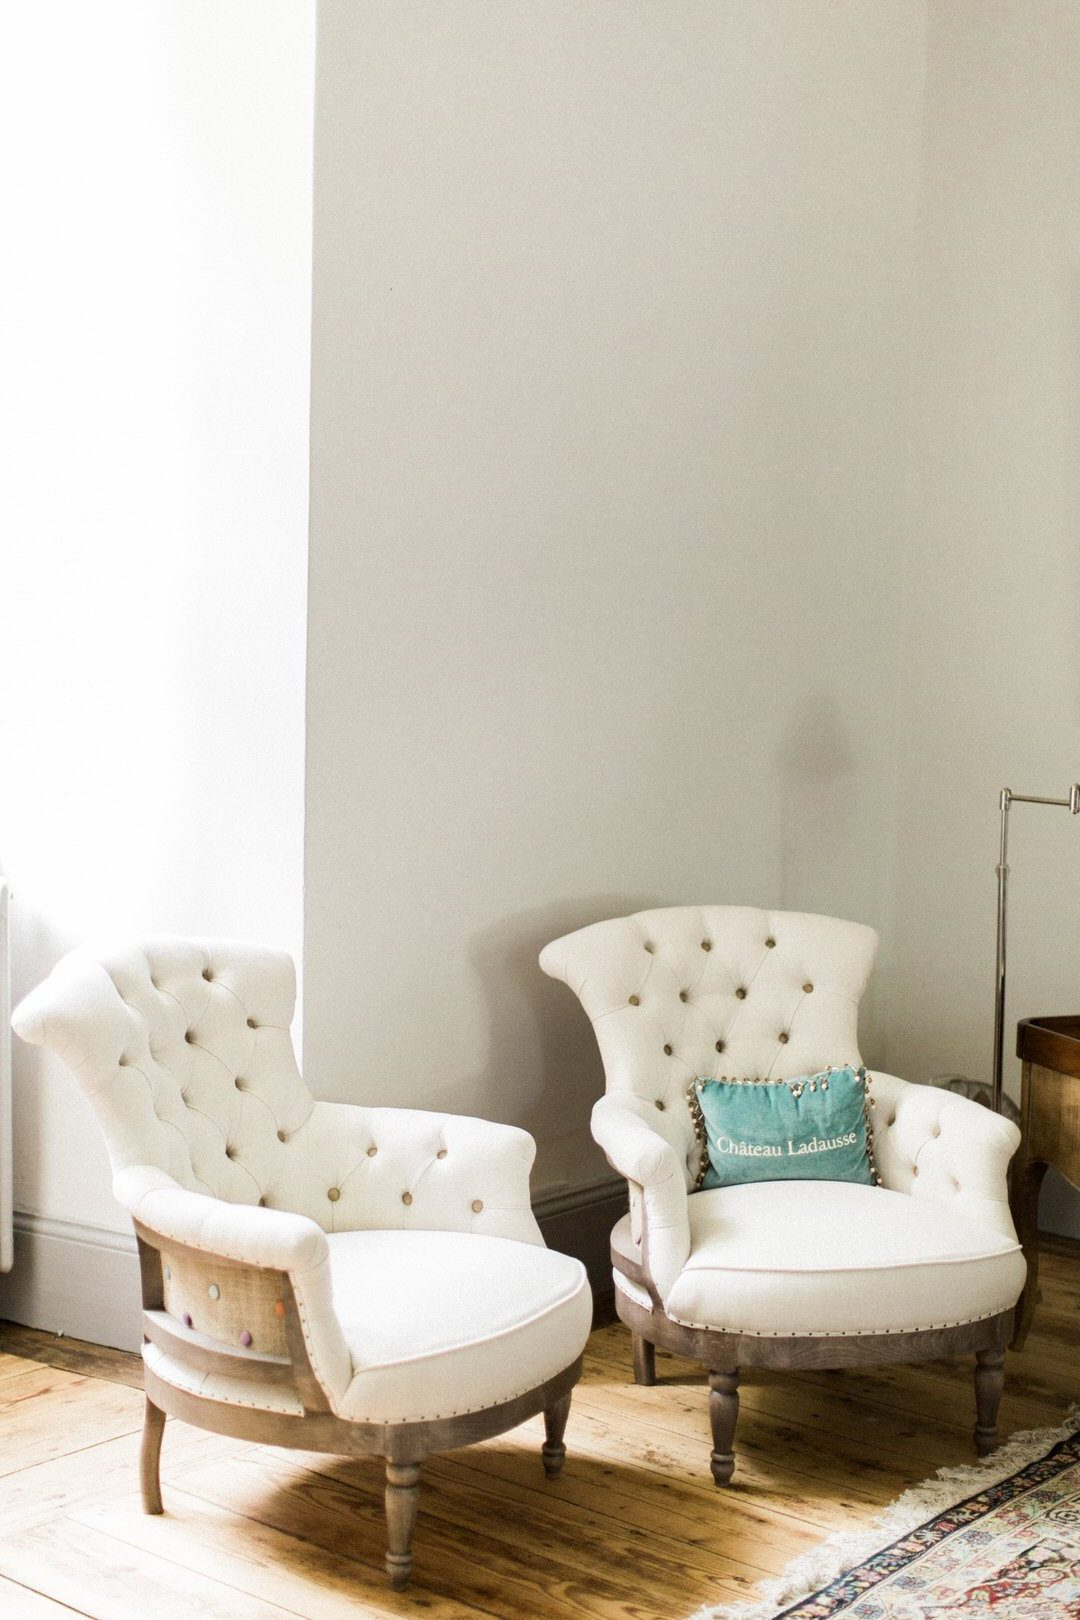 french-chateau-interior-upholstered-chairs